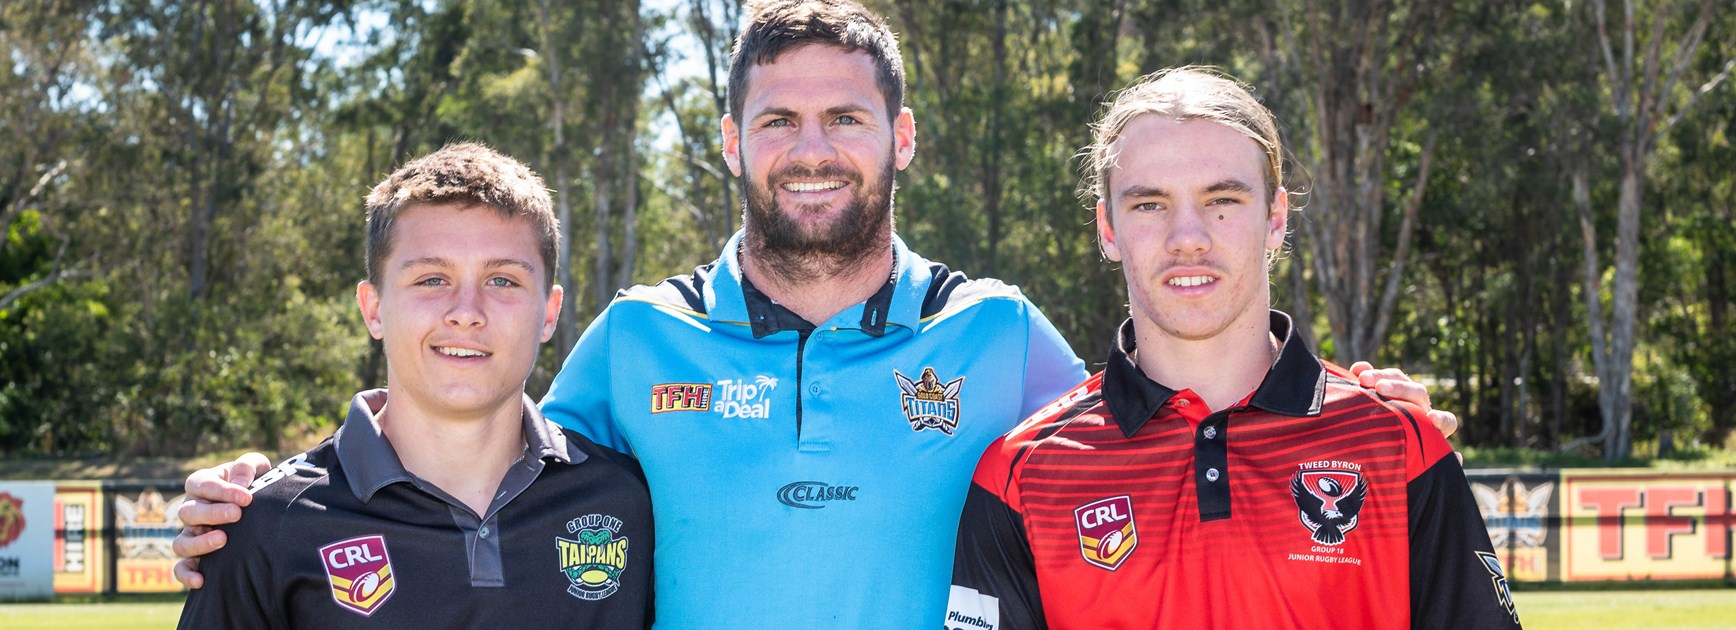 Titans join forces with NSW Northern Rivers region in historic deal